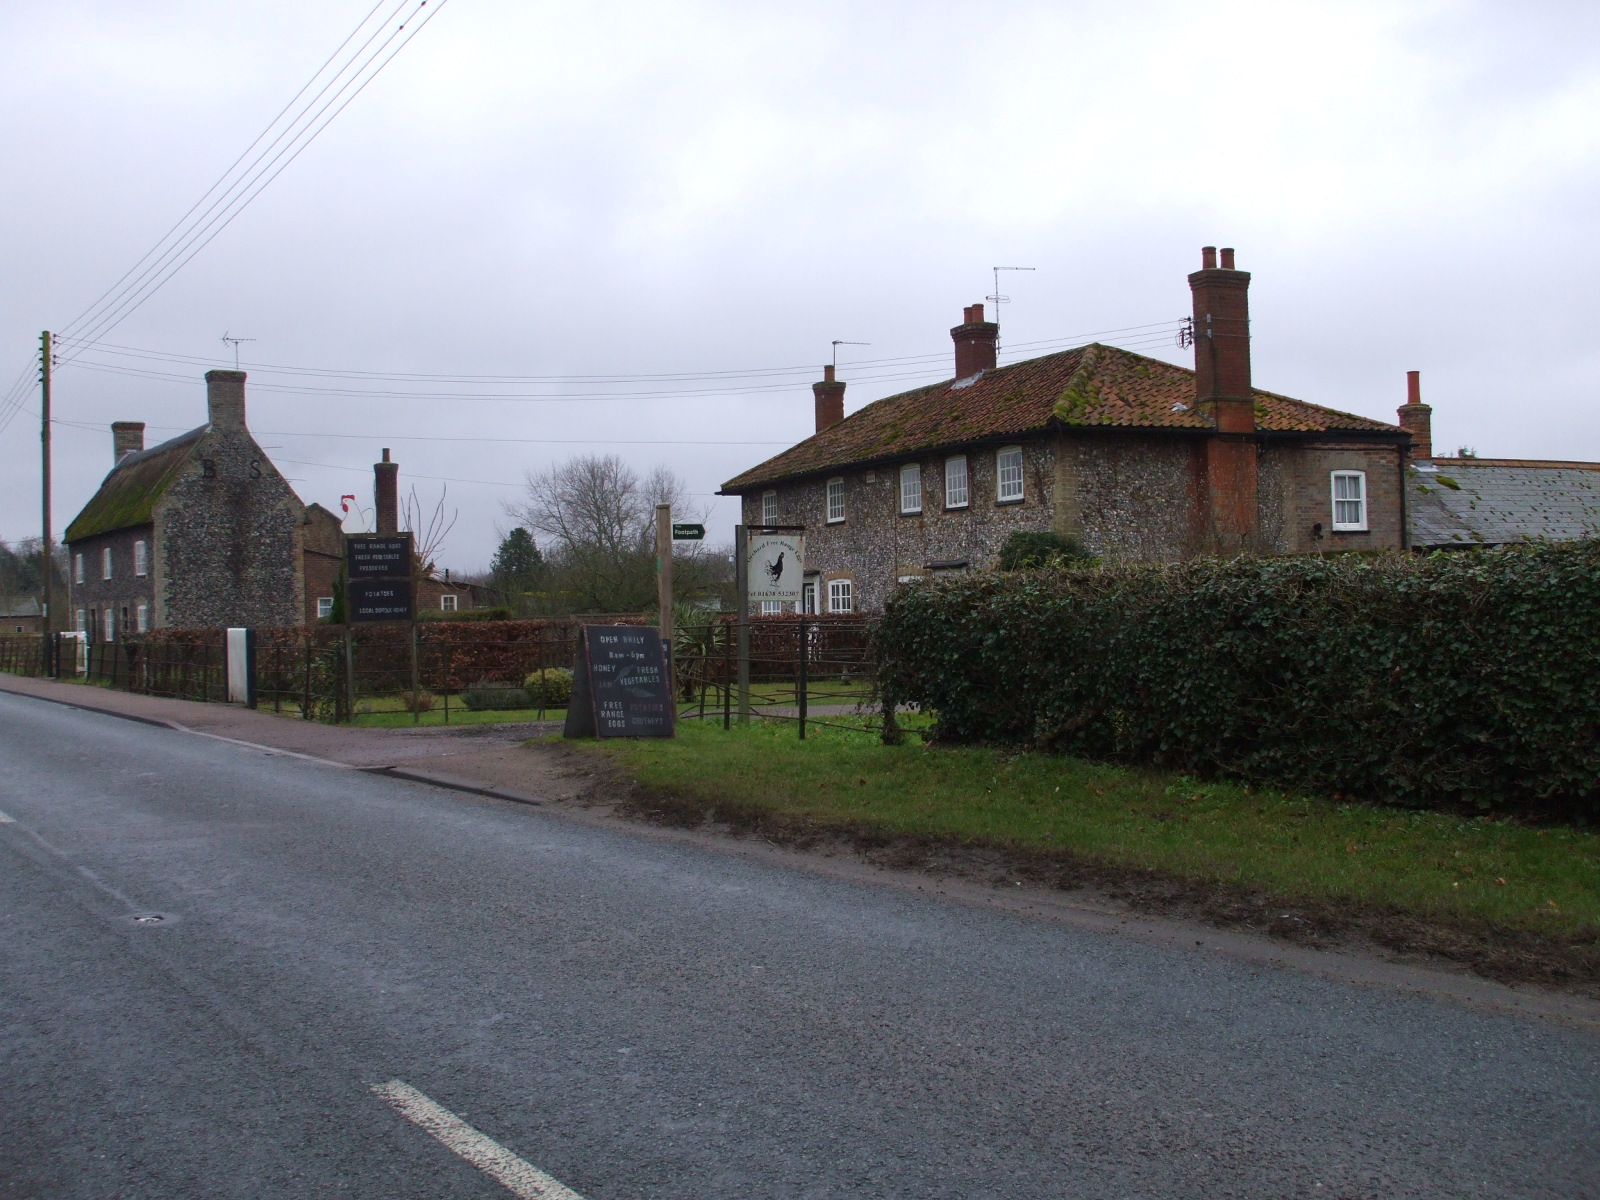 Eriswell village